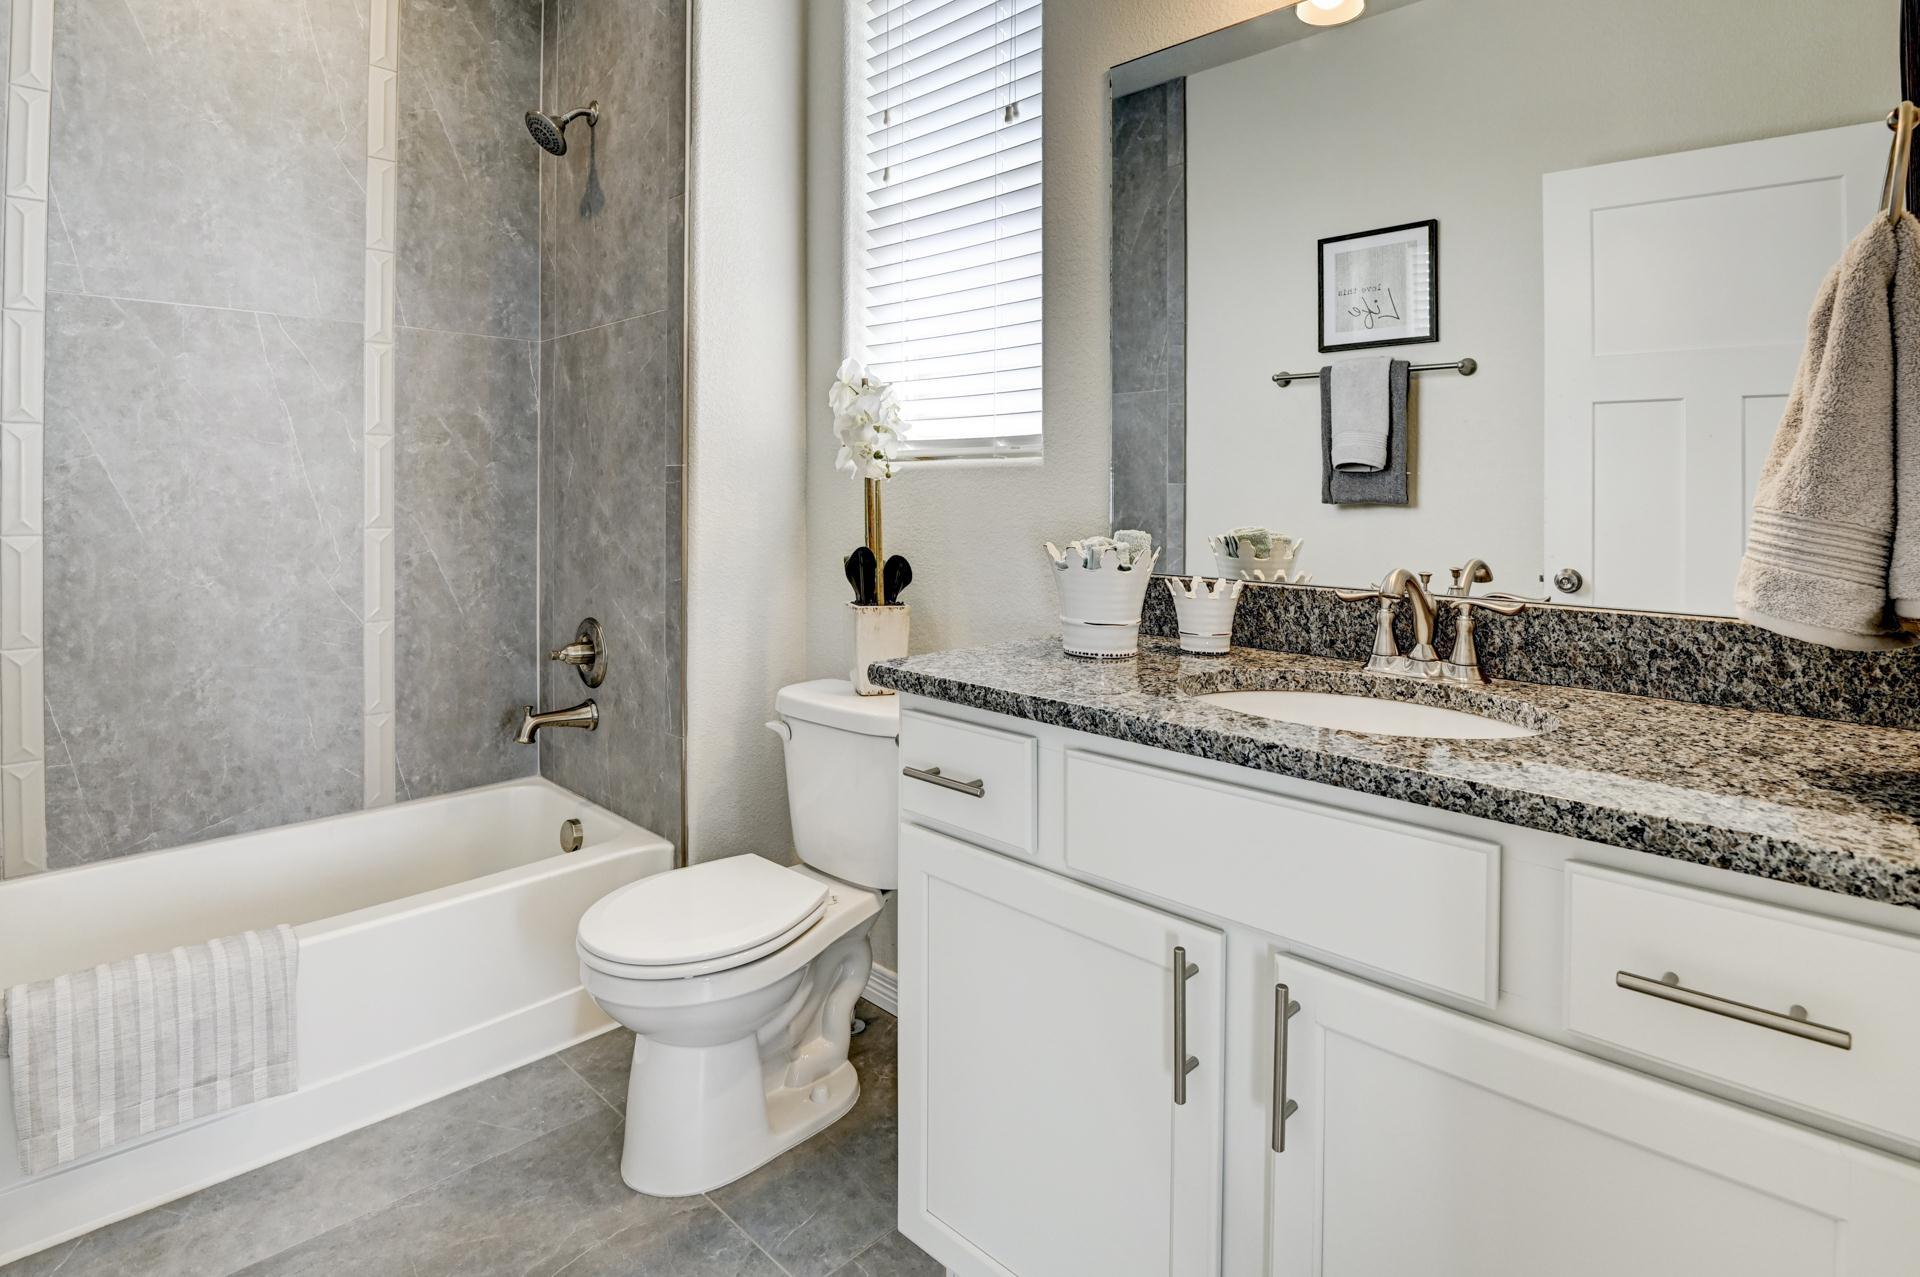 Bathroom featured in the Sunlight Peak (Finished Basement) By Reunion Homes in Colorado Springs, CO